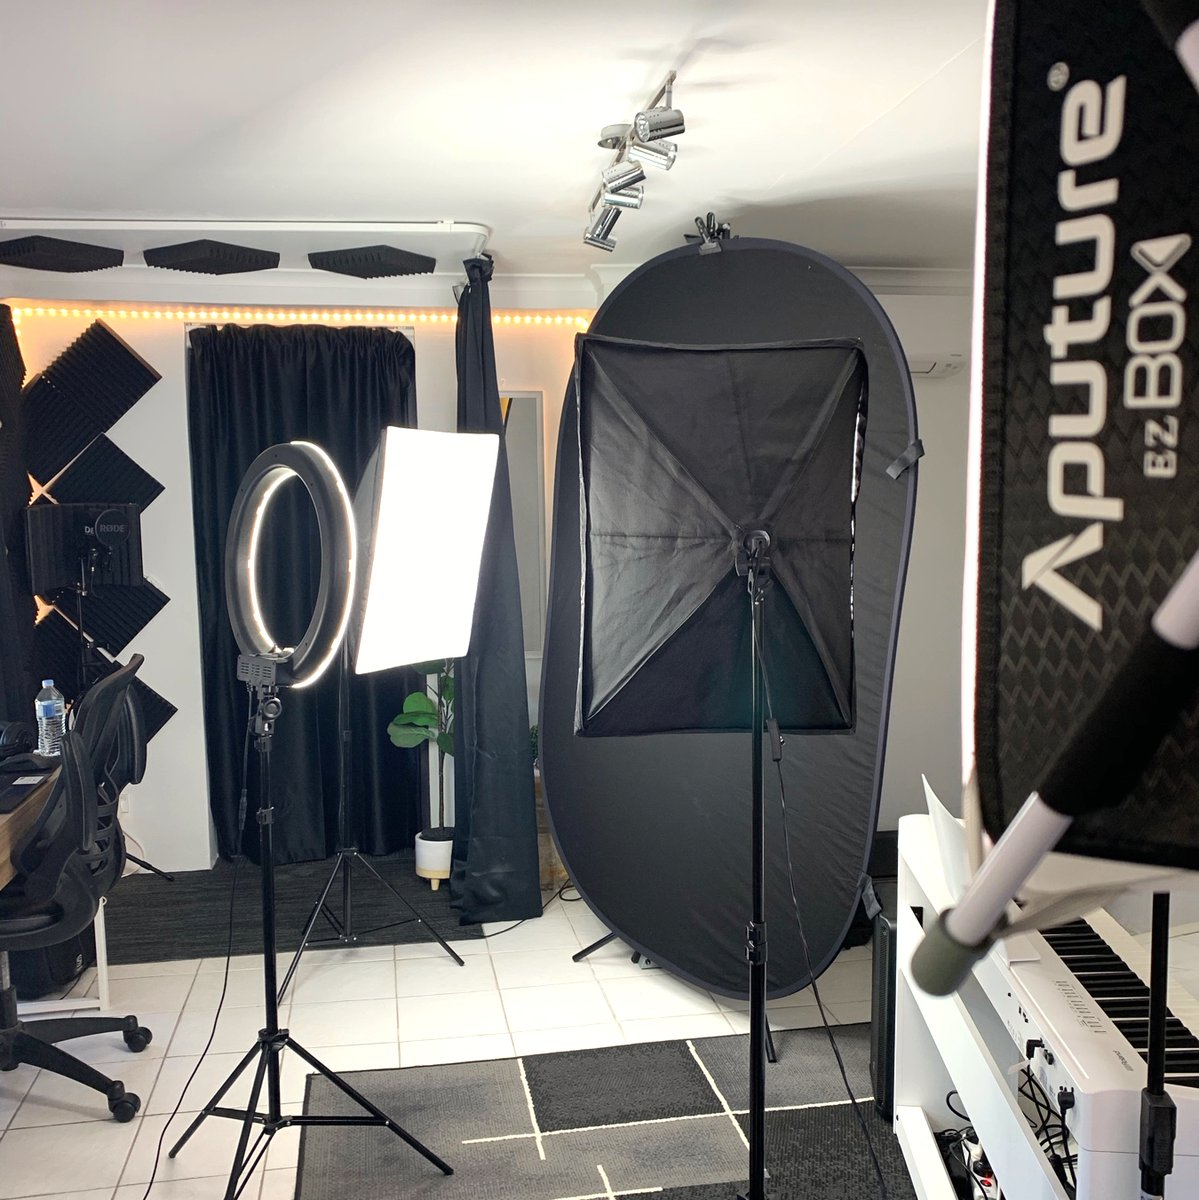 We have converted our studio today into a photobooth! Some amazing things are being planned for 2021! I hope you are ready.  #musictheory #musiceducation #vocaltraining #vocalcoach #singers #musicians #singinglessons #singing #singingwarmups #warmups #onlinelessons https://t.co/l3OLGAEPxw